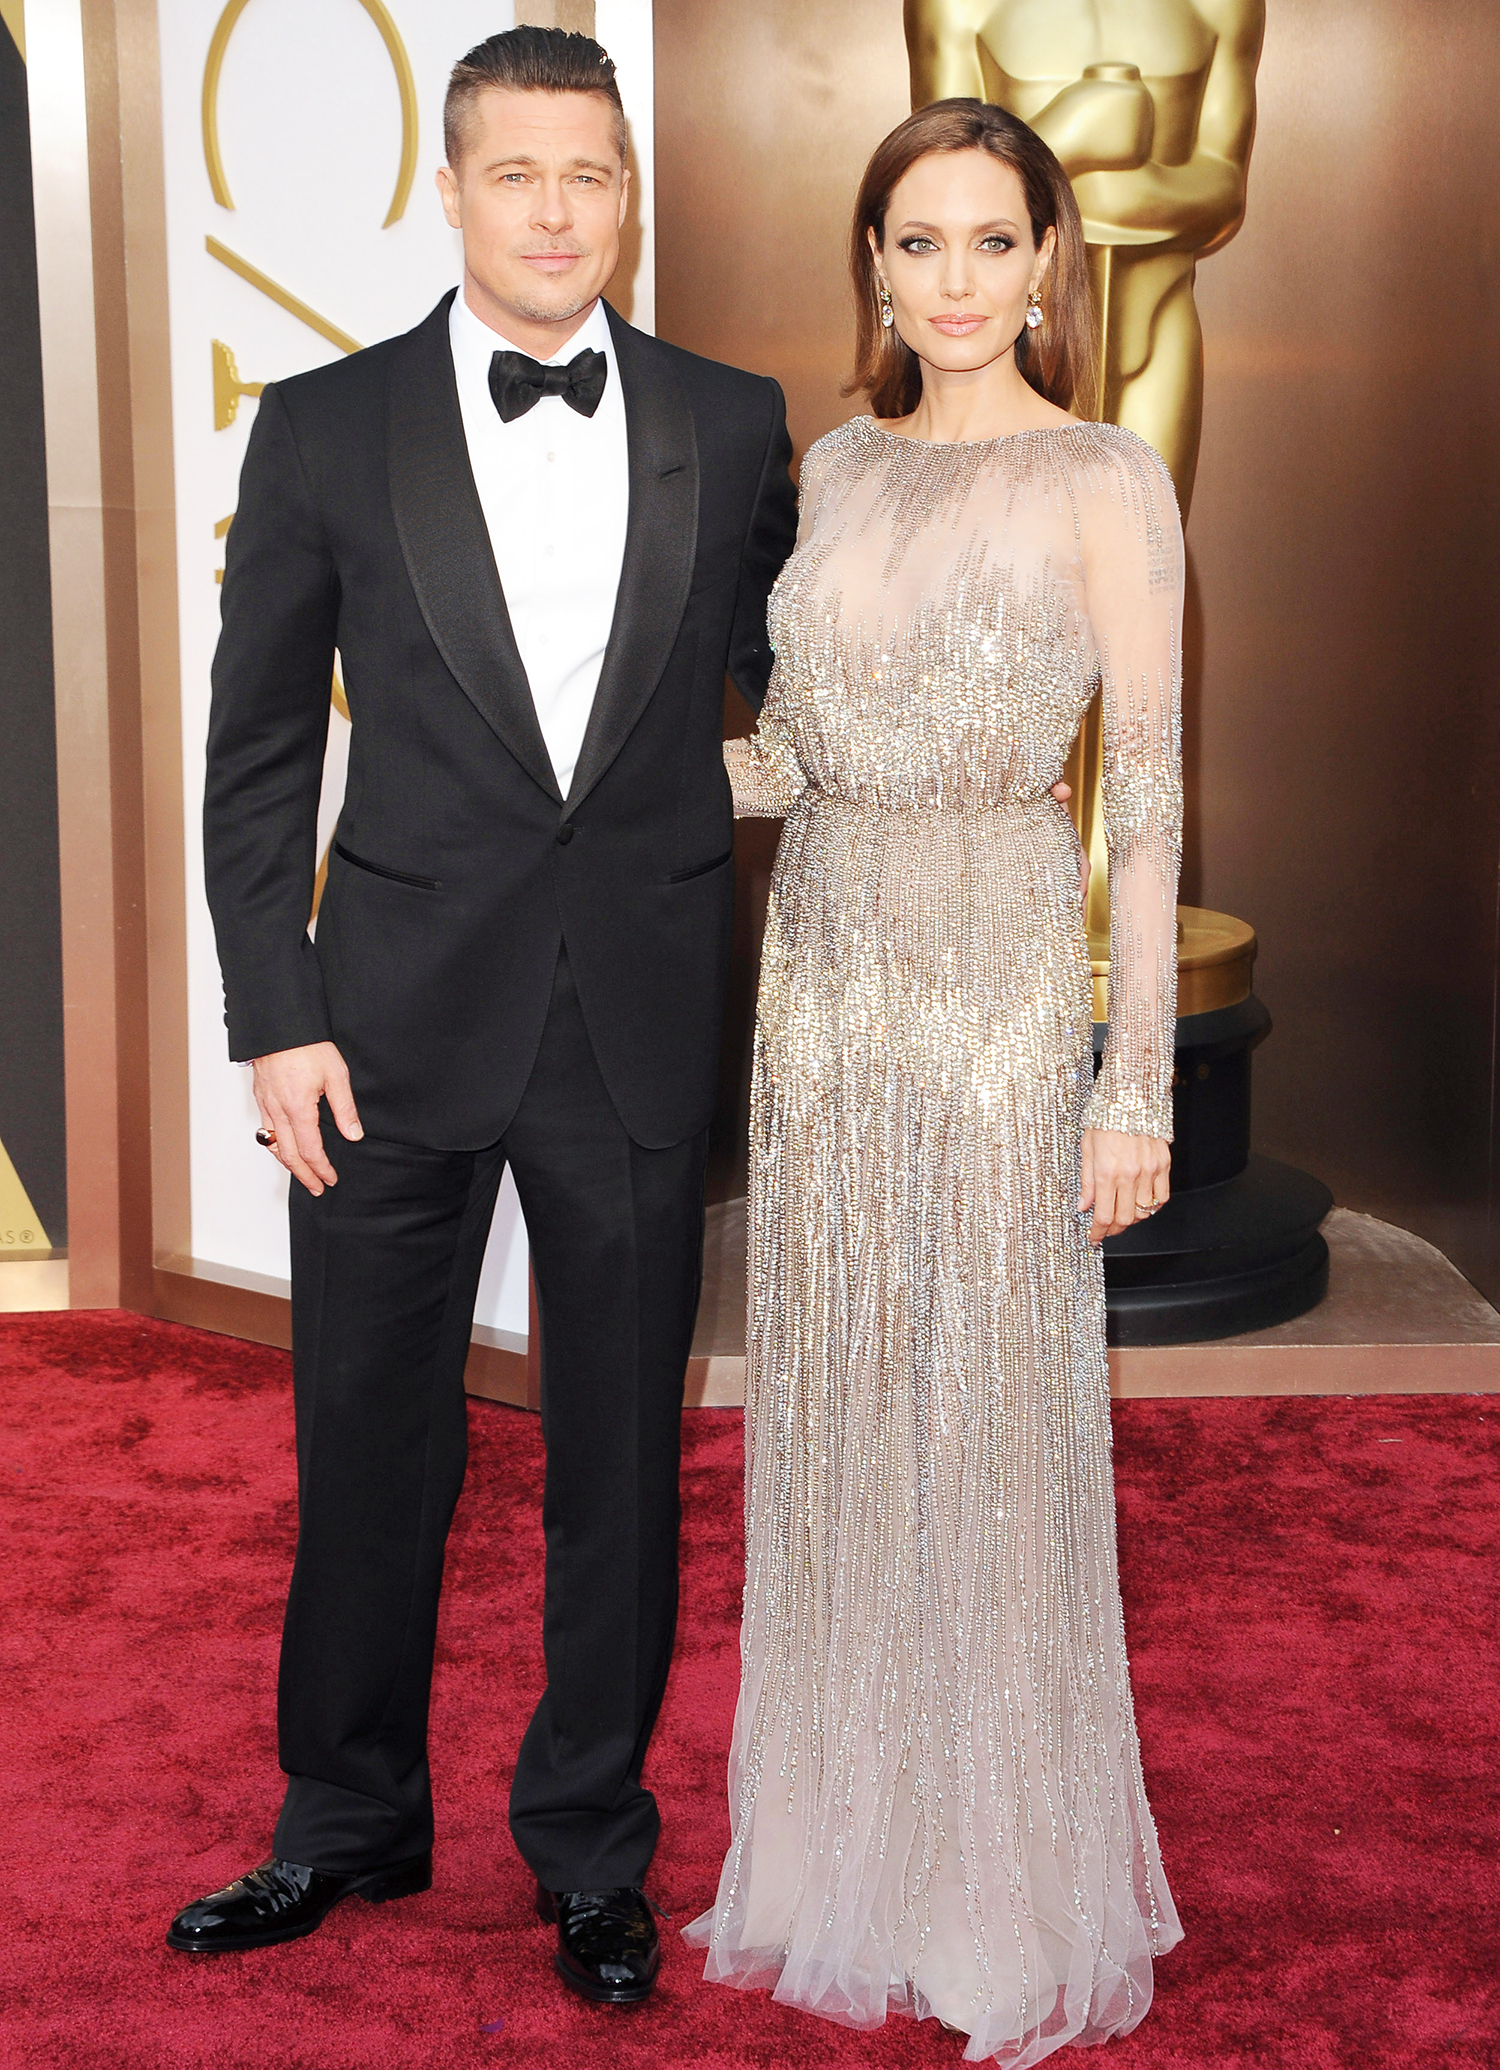 Brad Pitt and Angelina Jolie arrive at the 86th Annual Academy Awards at Hollywood & Highland Center on March 2, 2014 in Hollywood, California.